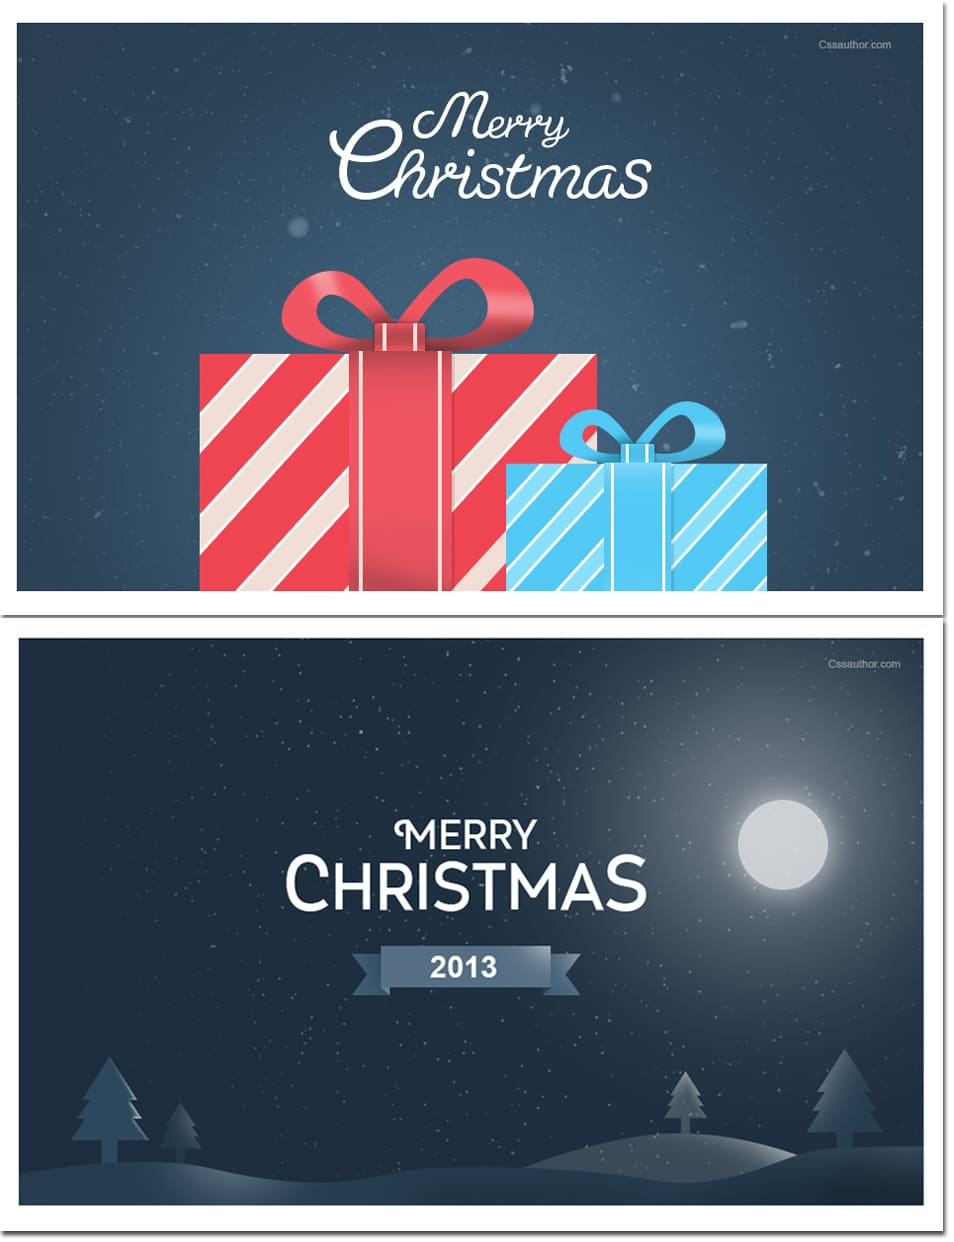 Clic-car-christmas-cards - Best Wallpapers Cloud